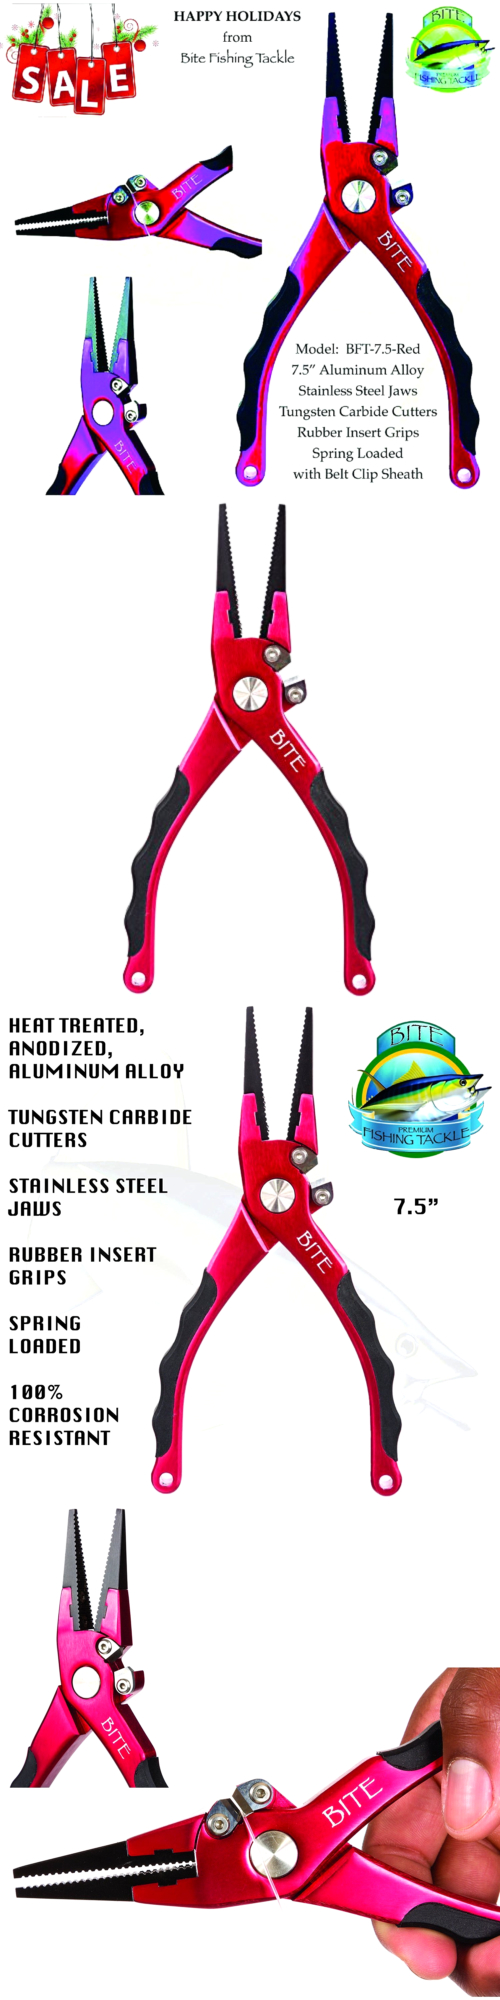 Pliers and Hook Removers 179997: 2017 Sale - Bite Professional Aluminum Saltwater Fishing Pliers -Spring Loaded-R -> BUY IT NOW ONLY: $117.39 on eBay!